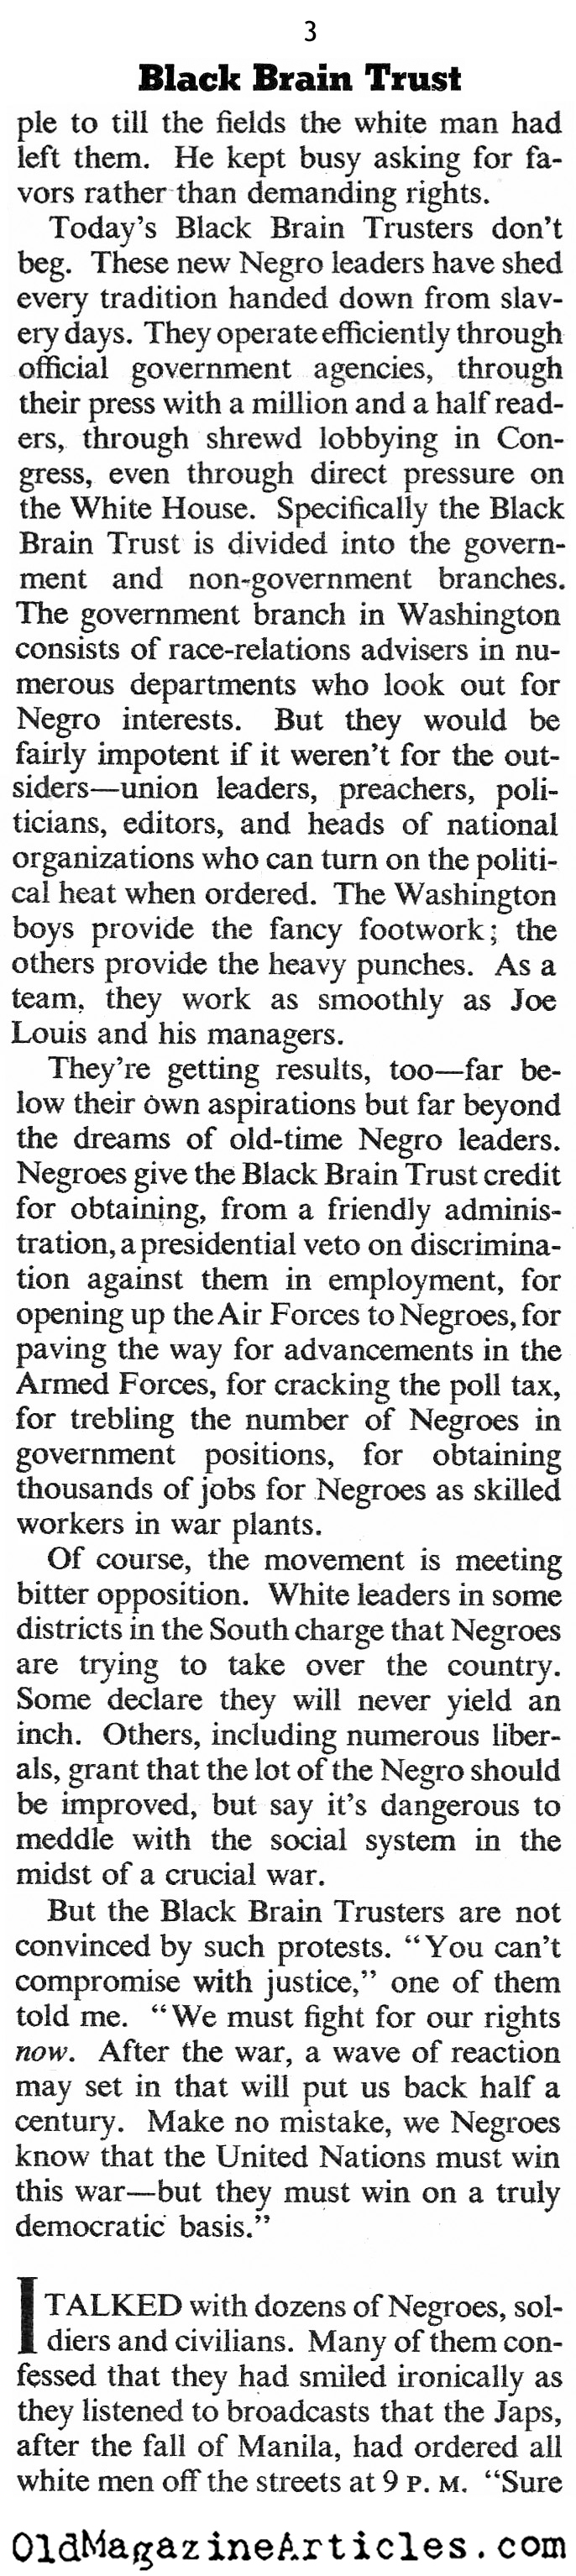 ''The Black Brain Trust'' (The American Magazine, 1943)